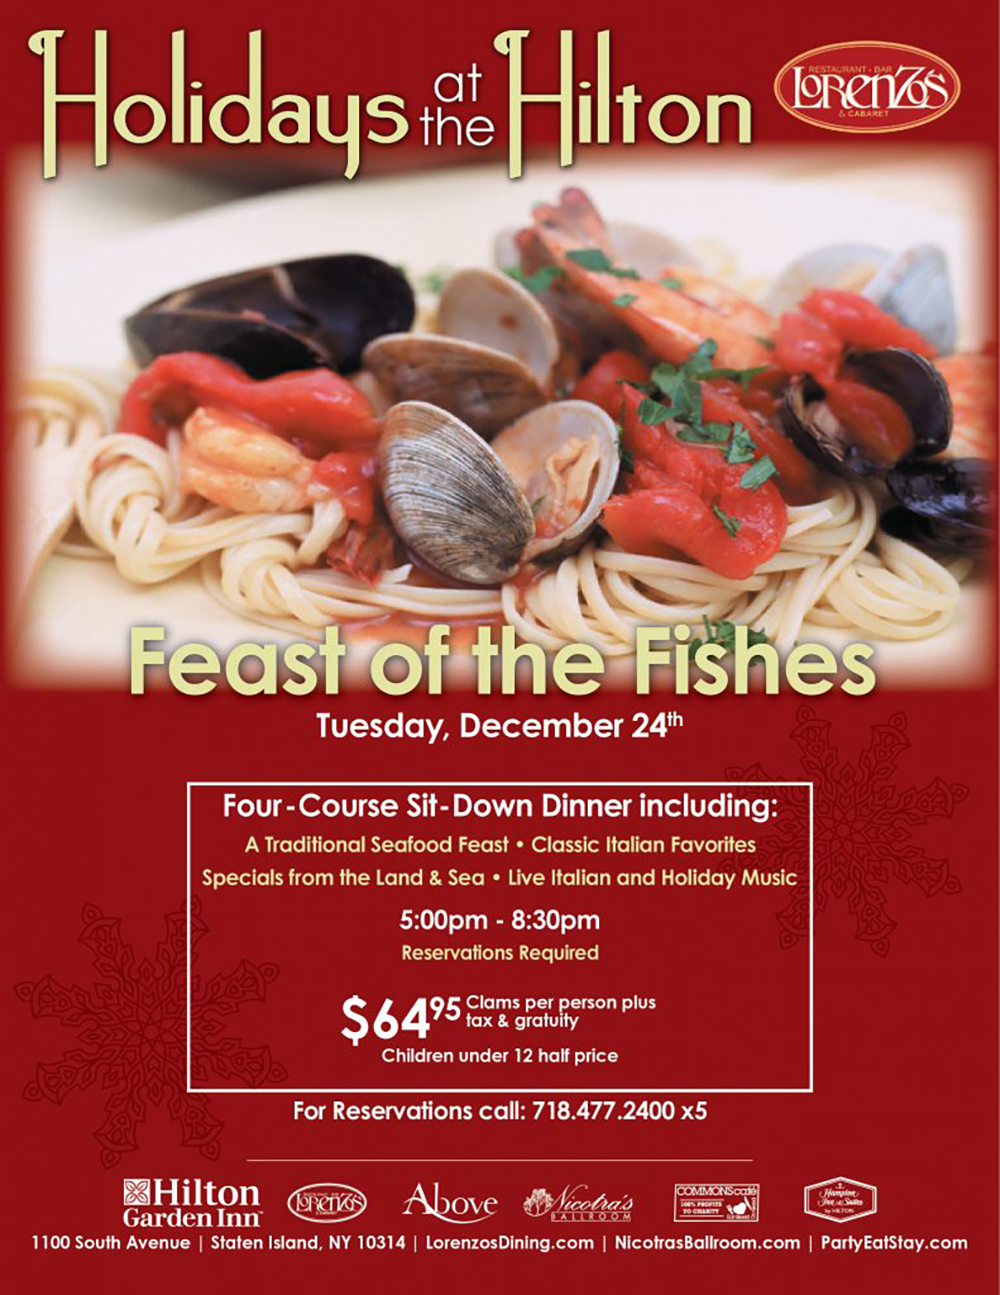 Feast of the Fishes